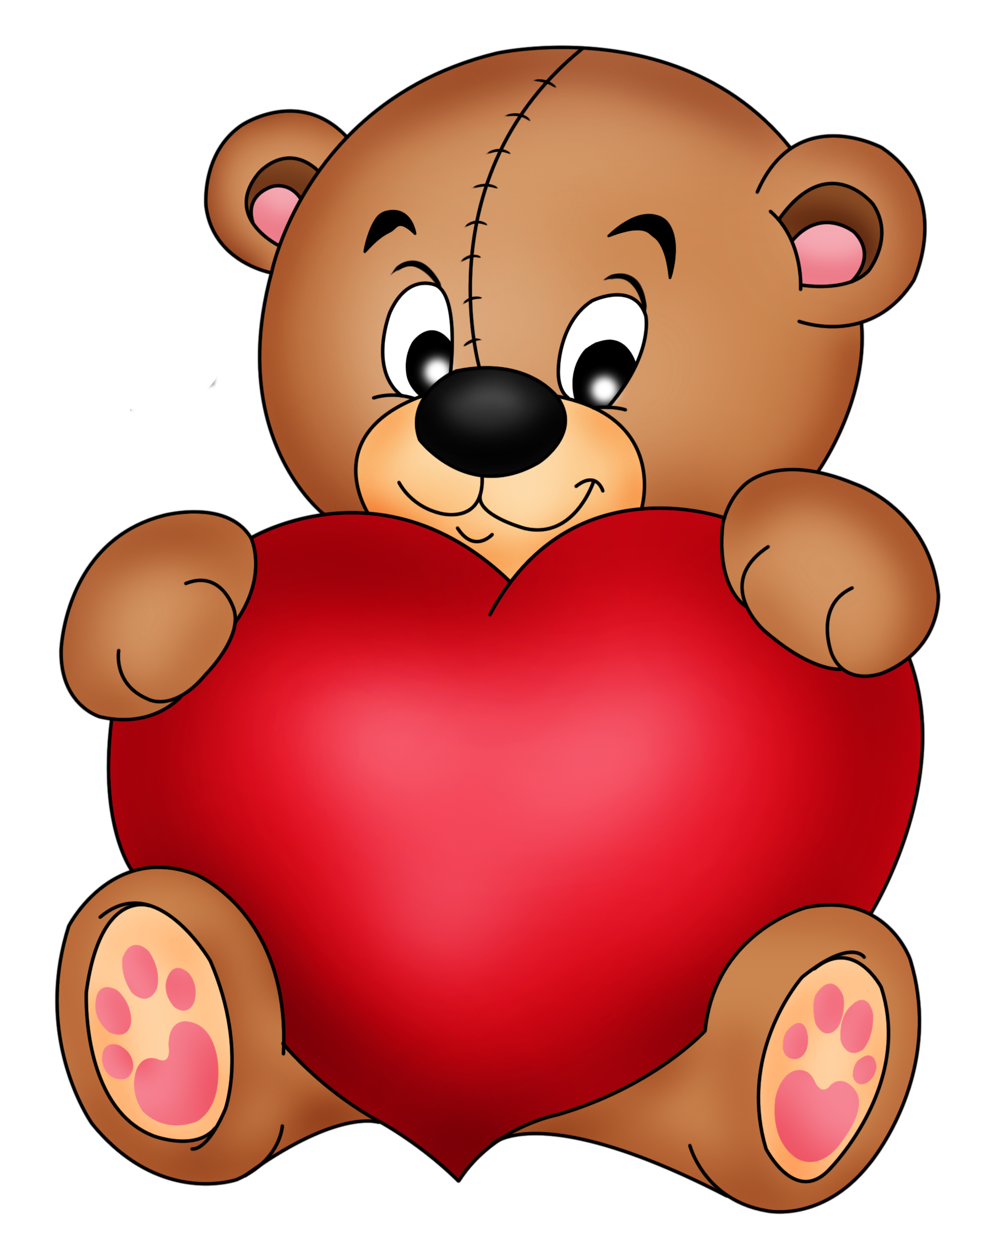 996x1250 Brown Teddy with Red Heart PNG Clipart Nanda Kumar